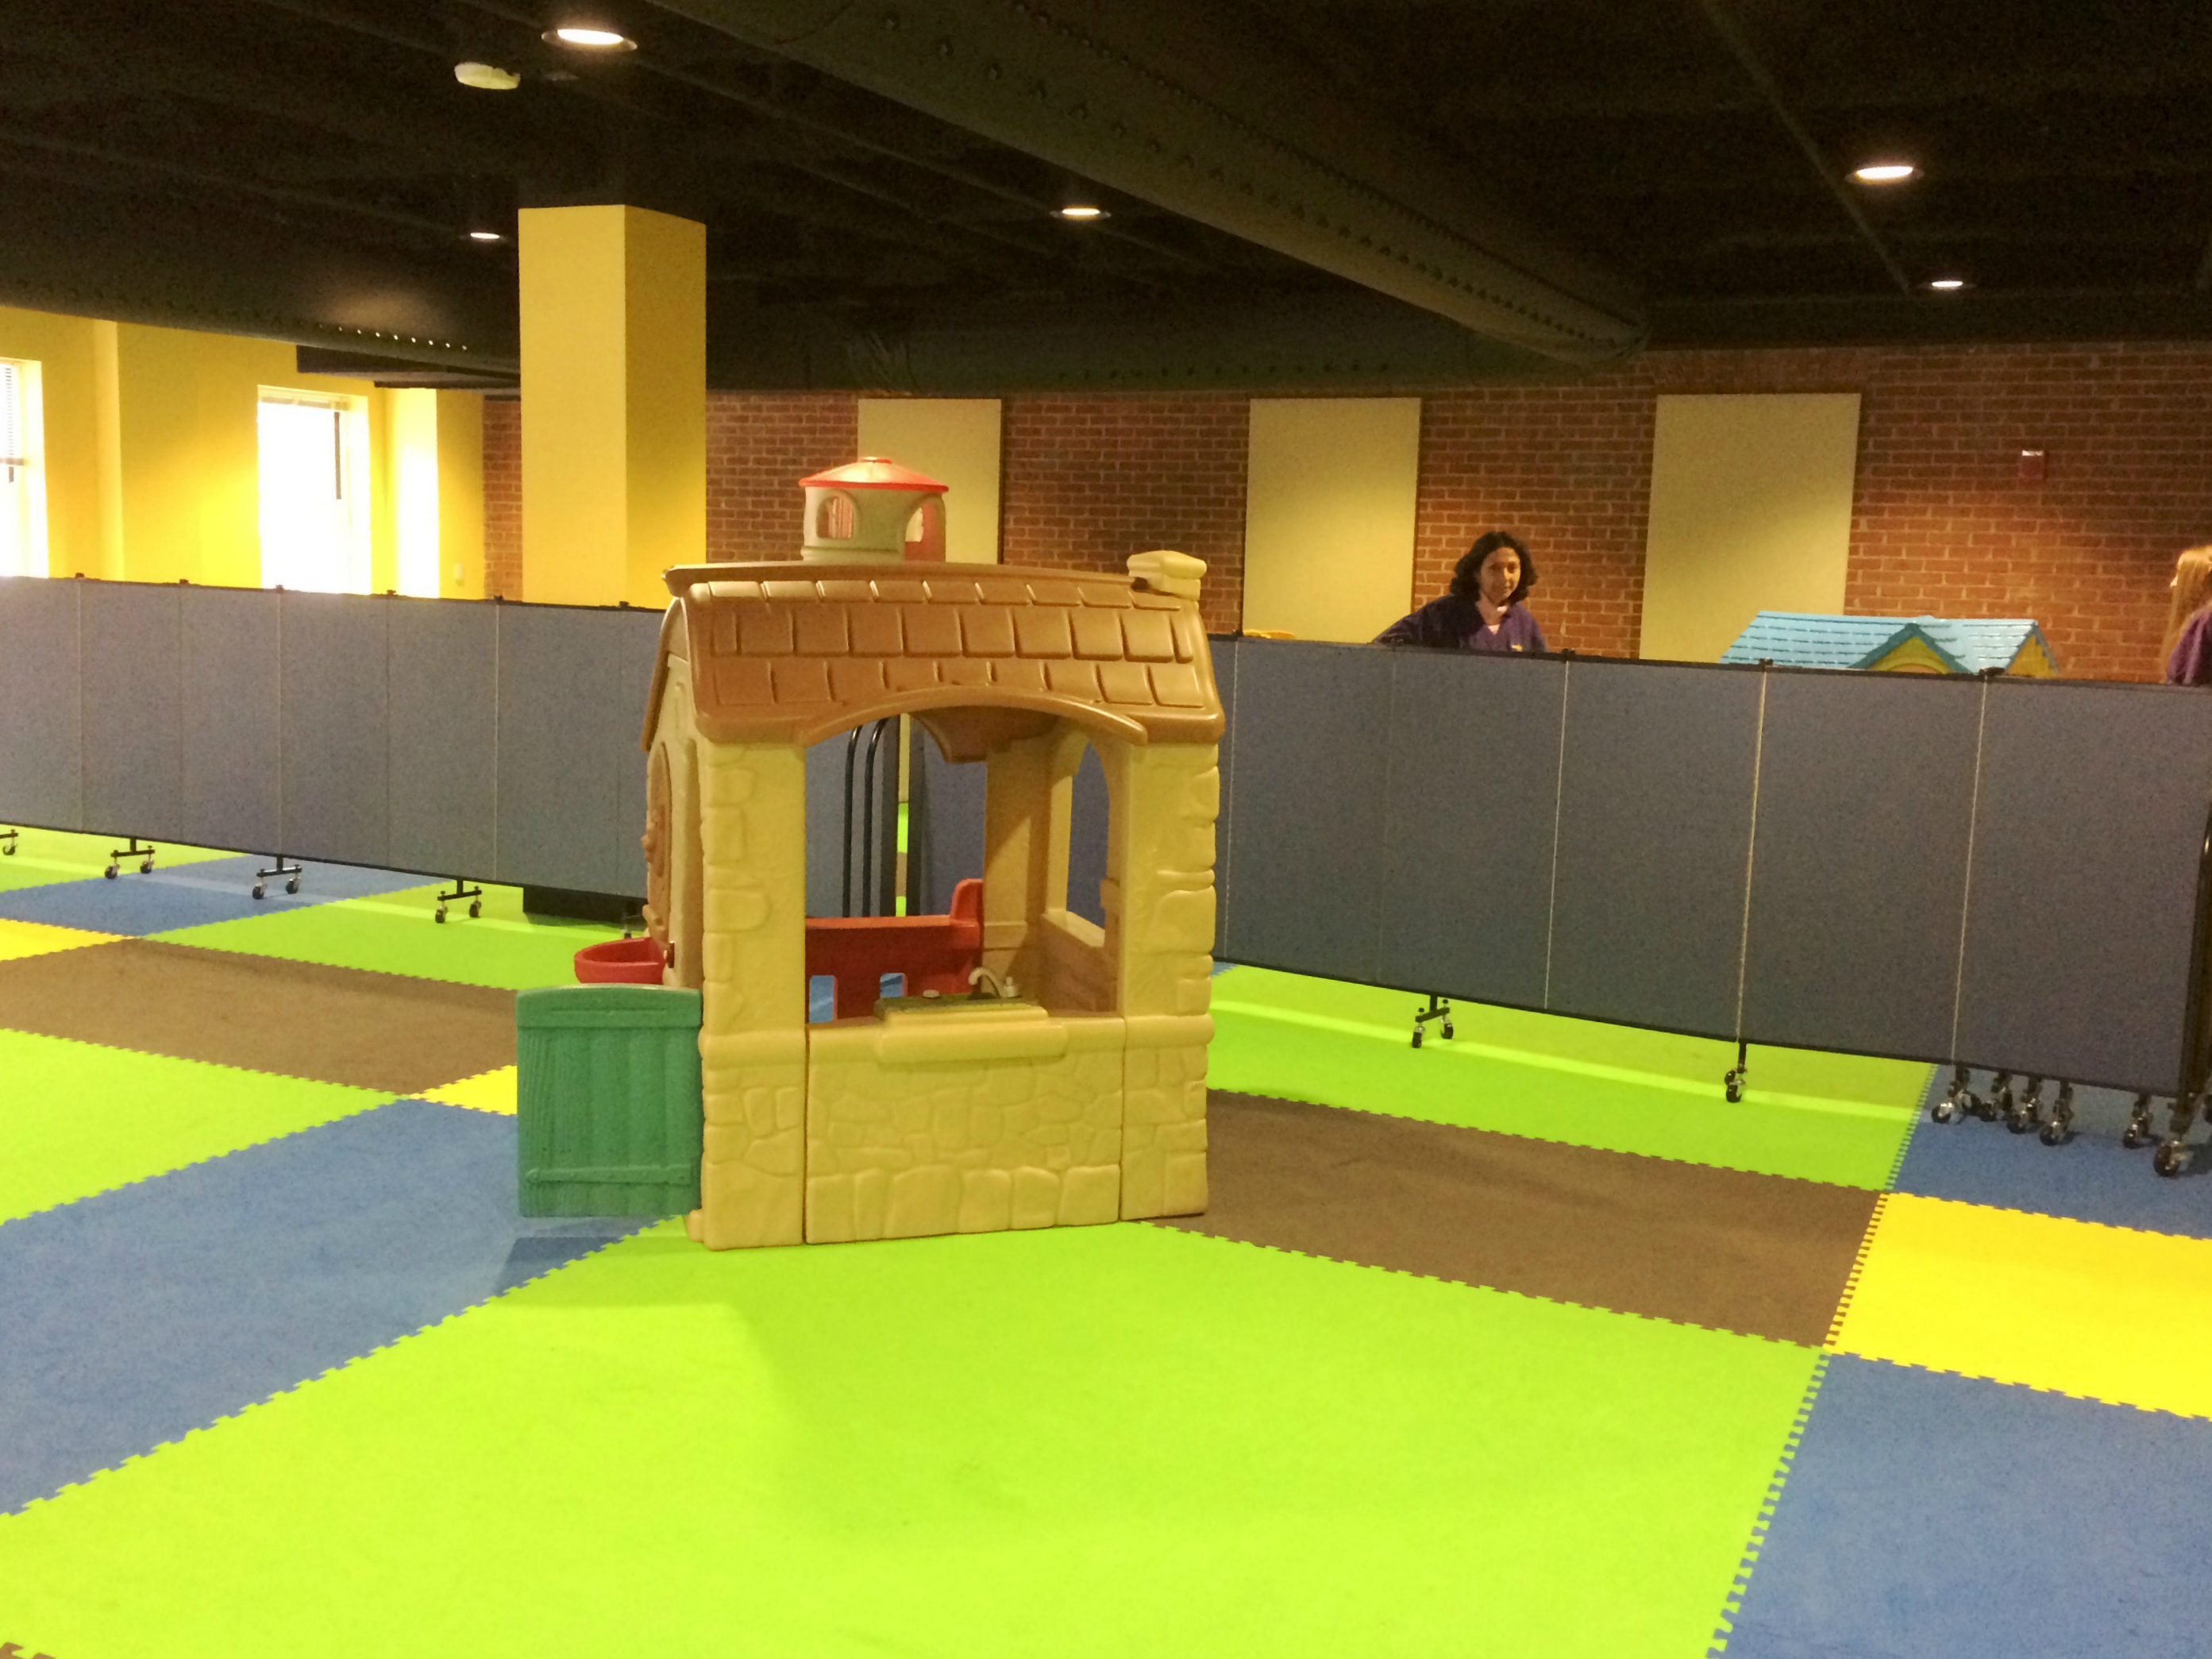 Room divider in a day care center